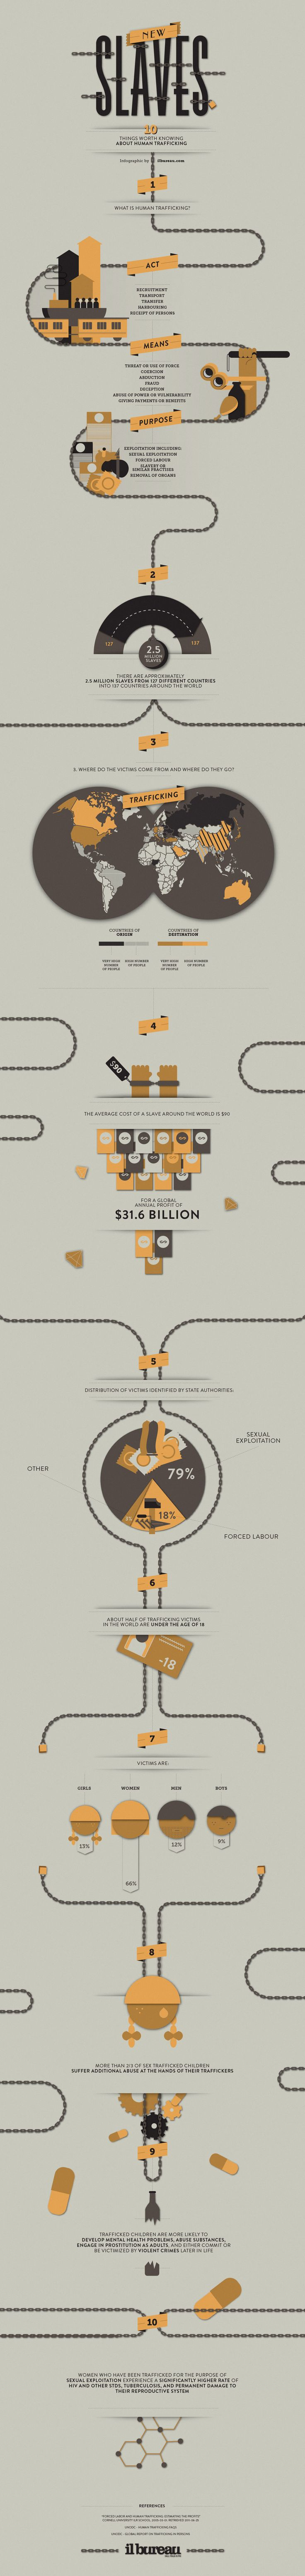 Unique Infographic Design, 10 Things Worth Knowing About Human Trafficking #Infographic #Design (http://www.pinterest.com/aldenchong/)